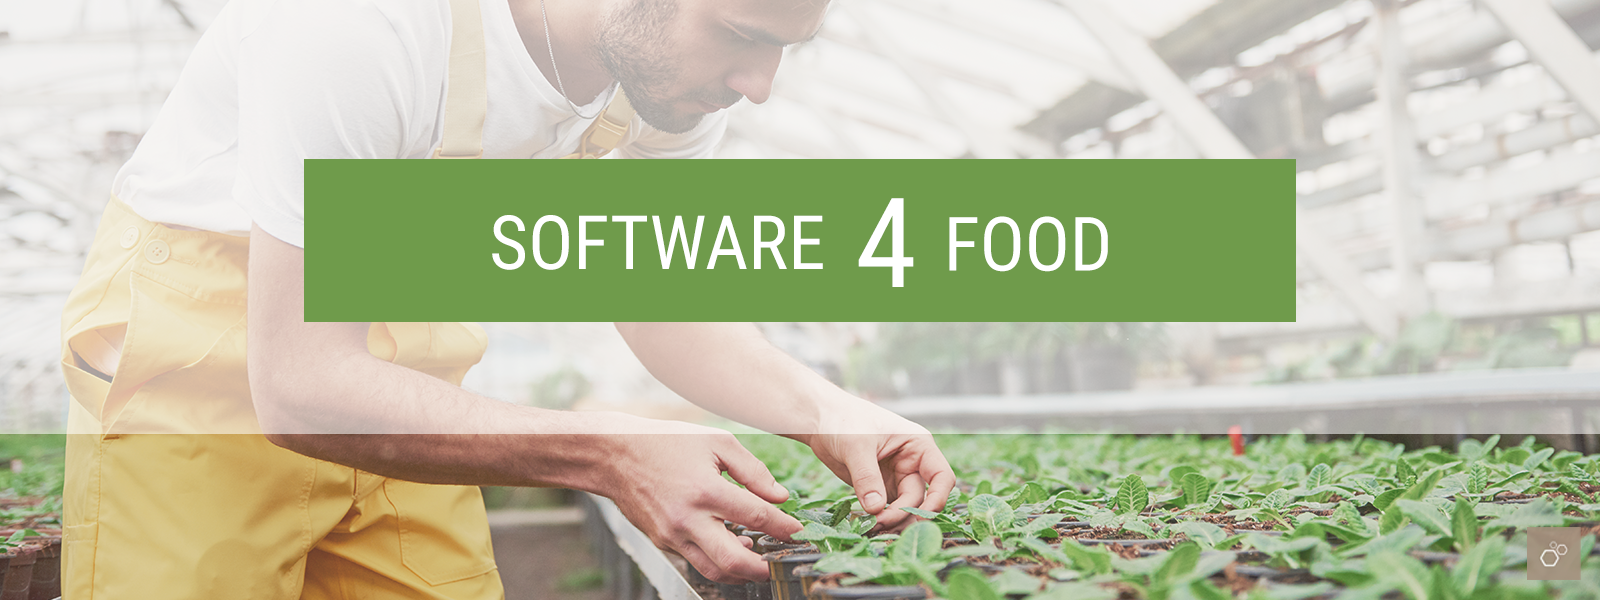 Header-OTE-Software4Food